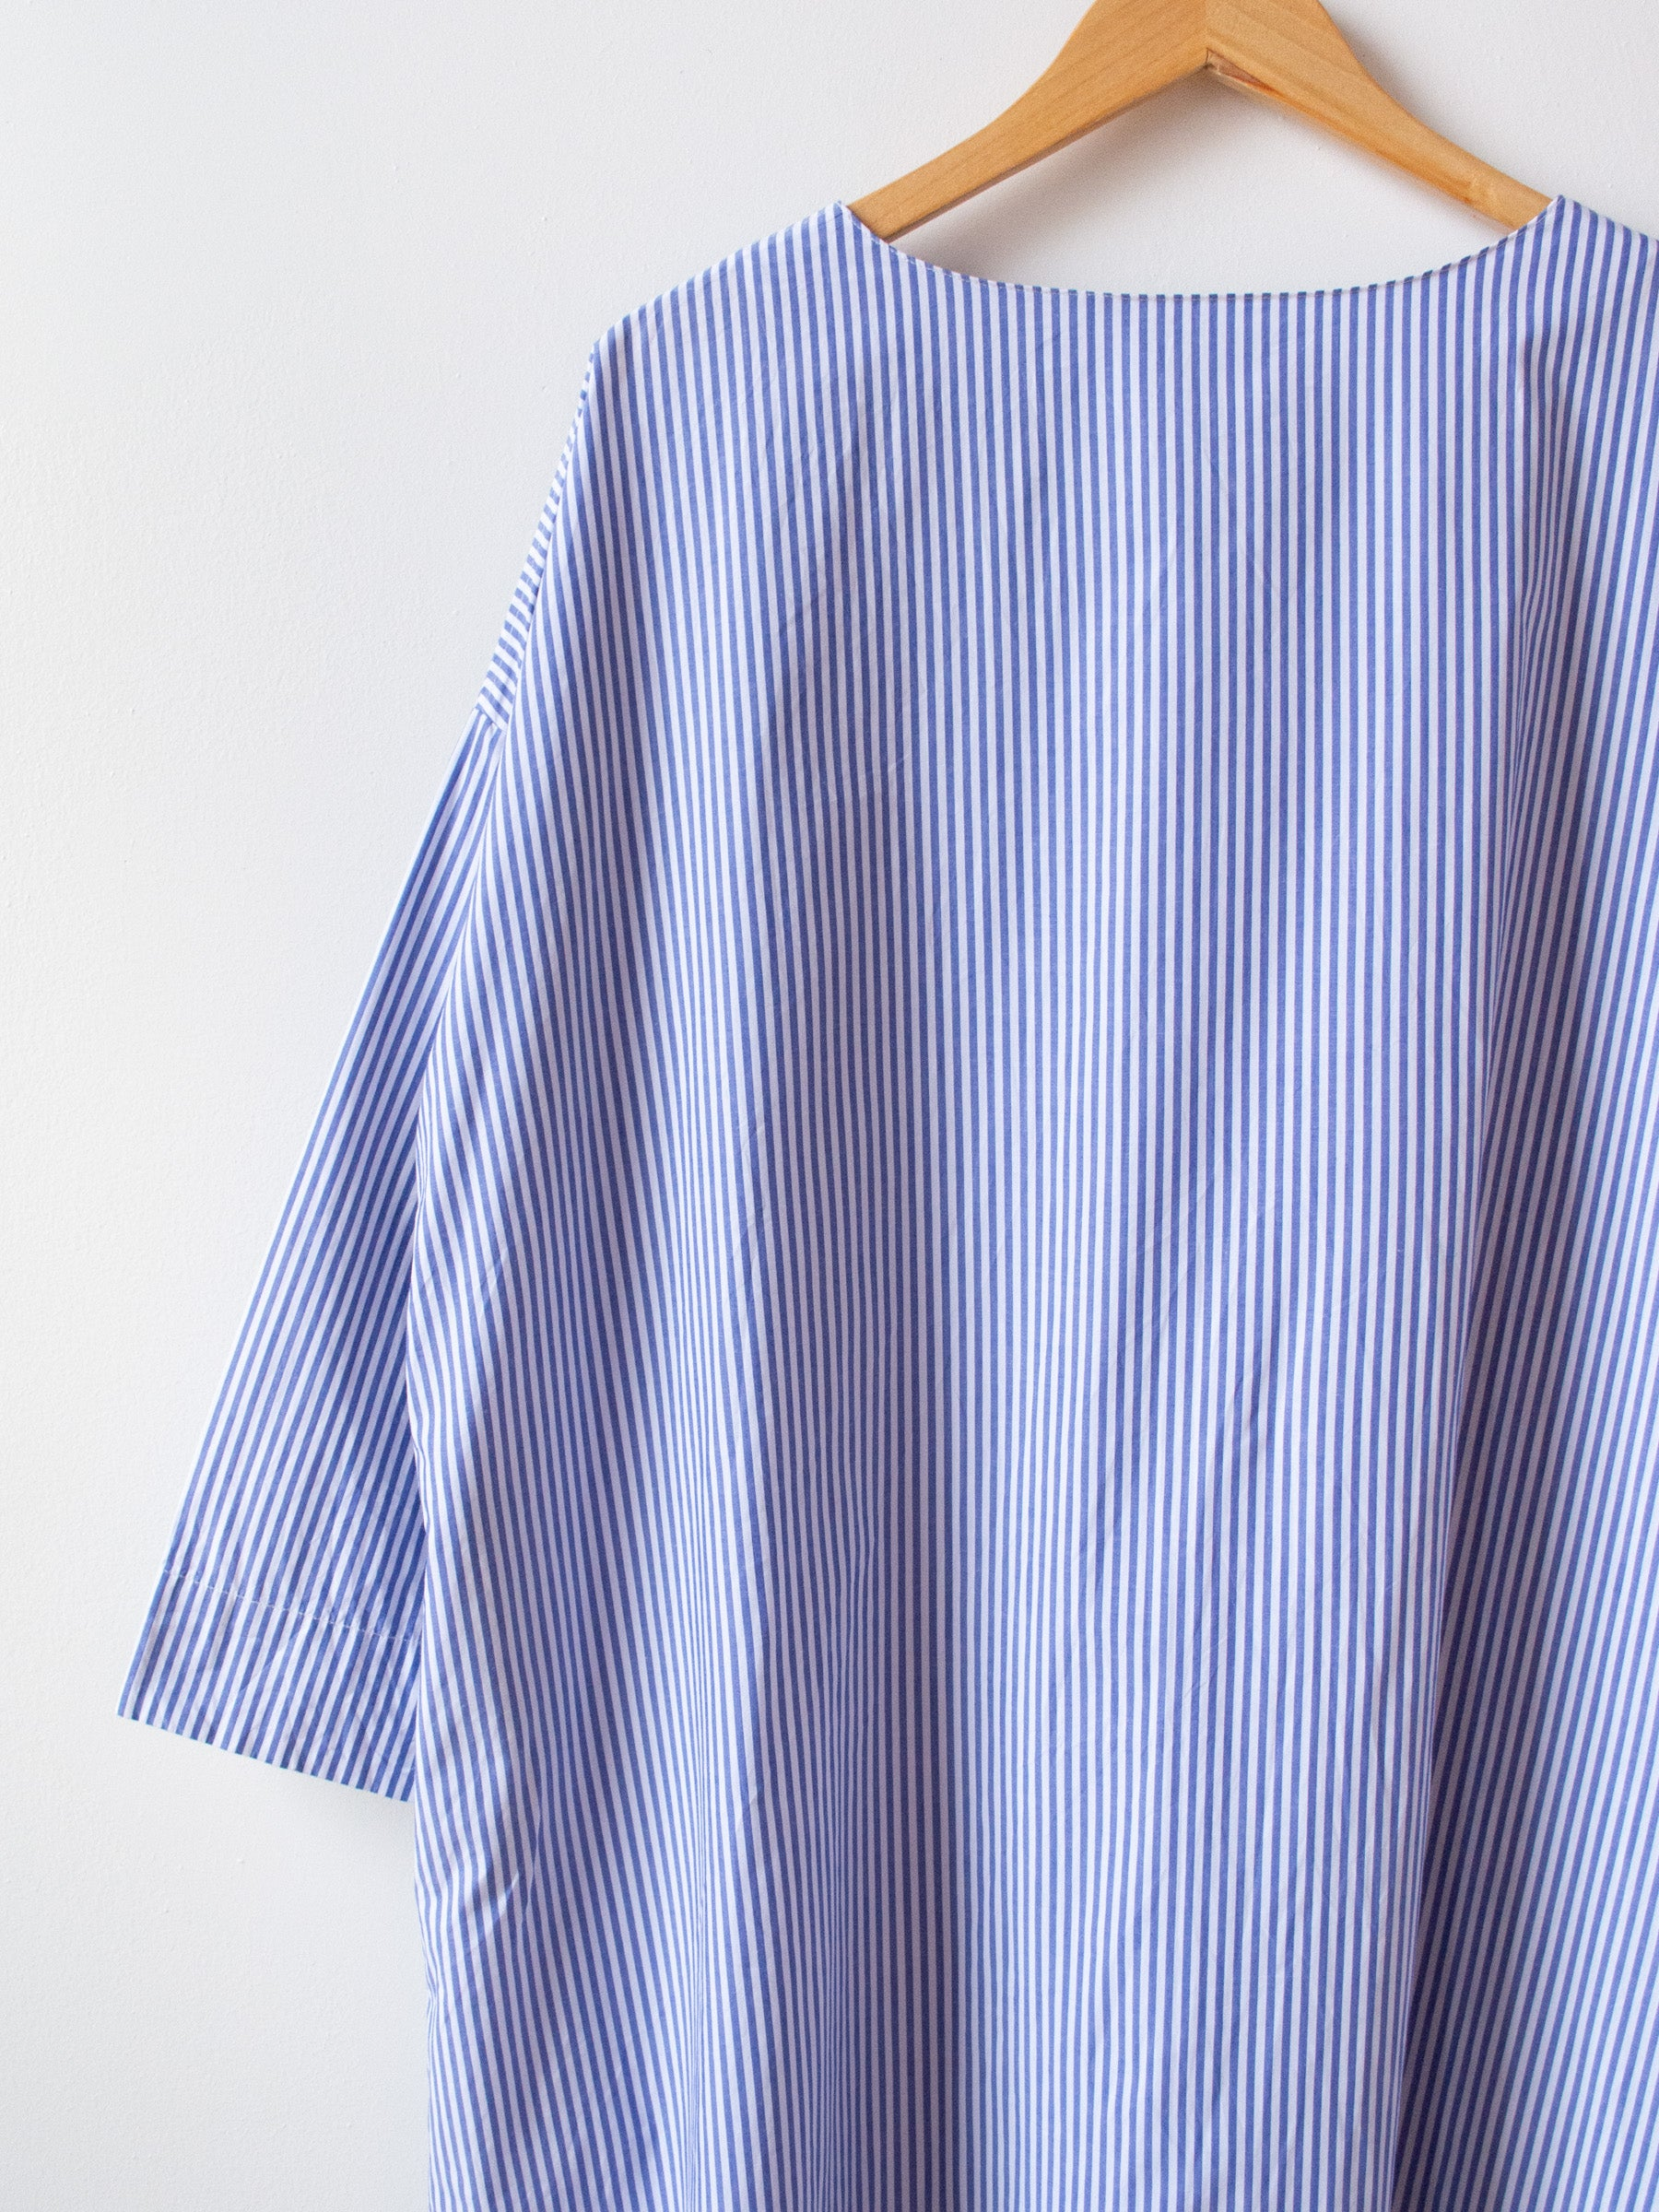 Typewriter Stripe Dress - White x Blue